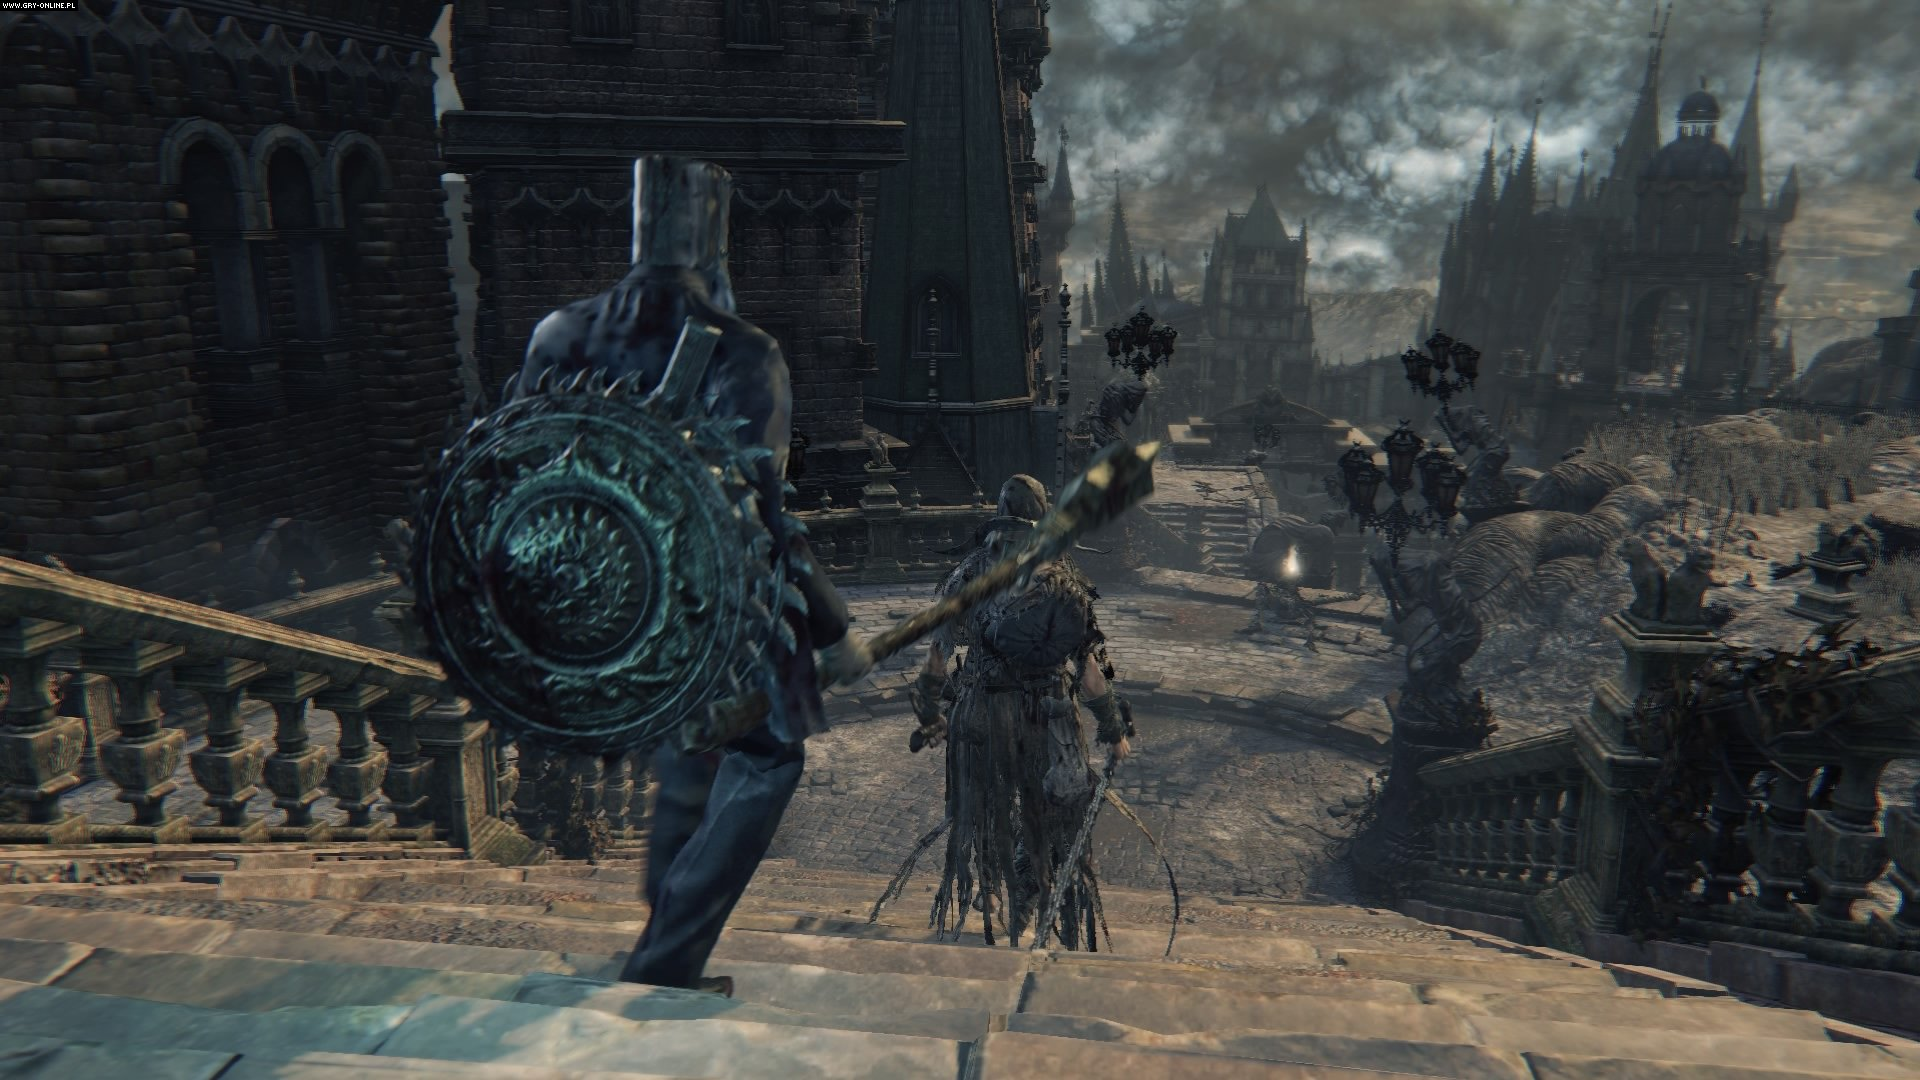 Bloodborne: The Old Hunters PS4 Gry Screen 6/50, FromSoftware, Sony Interactive Entertainment